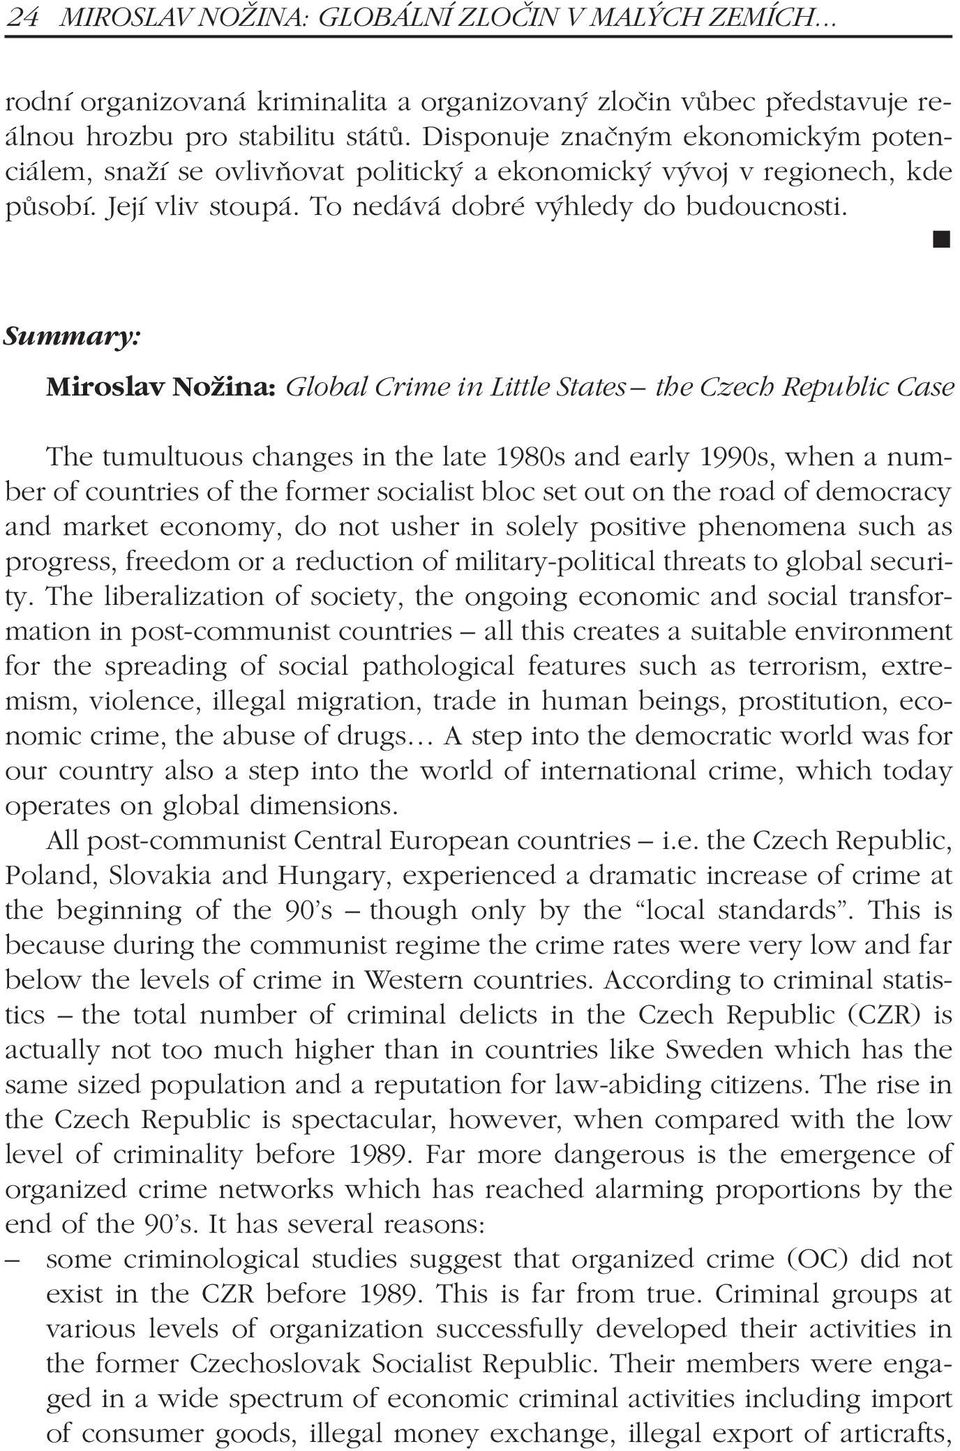 n Summary: Miroslav Nožina: Global Crime in Little States the Czech Republic Case The tumultuous changes in the late 1980s and early 1990s, when a number of countries of the former socialist bloc set